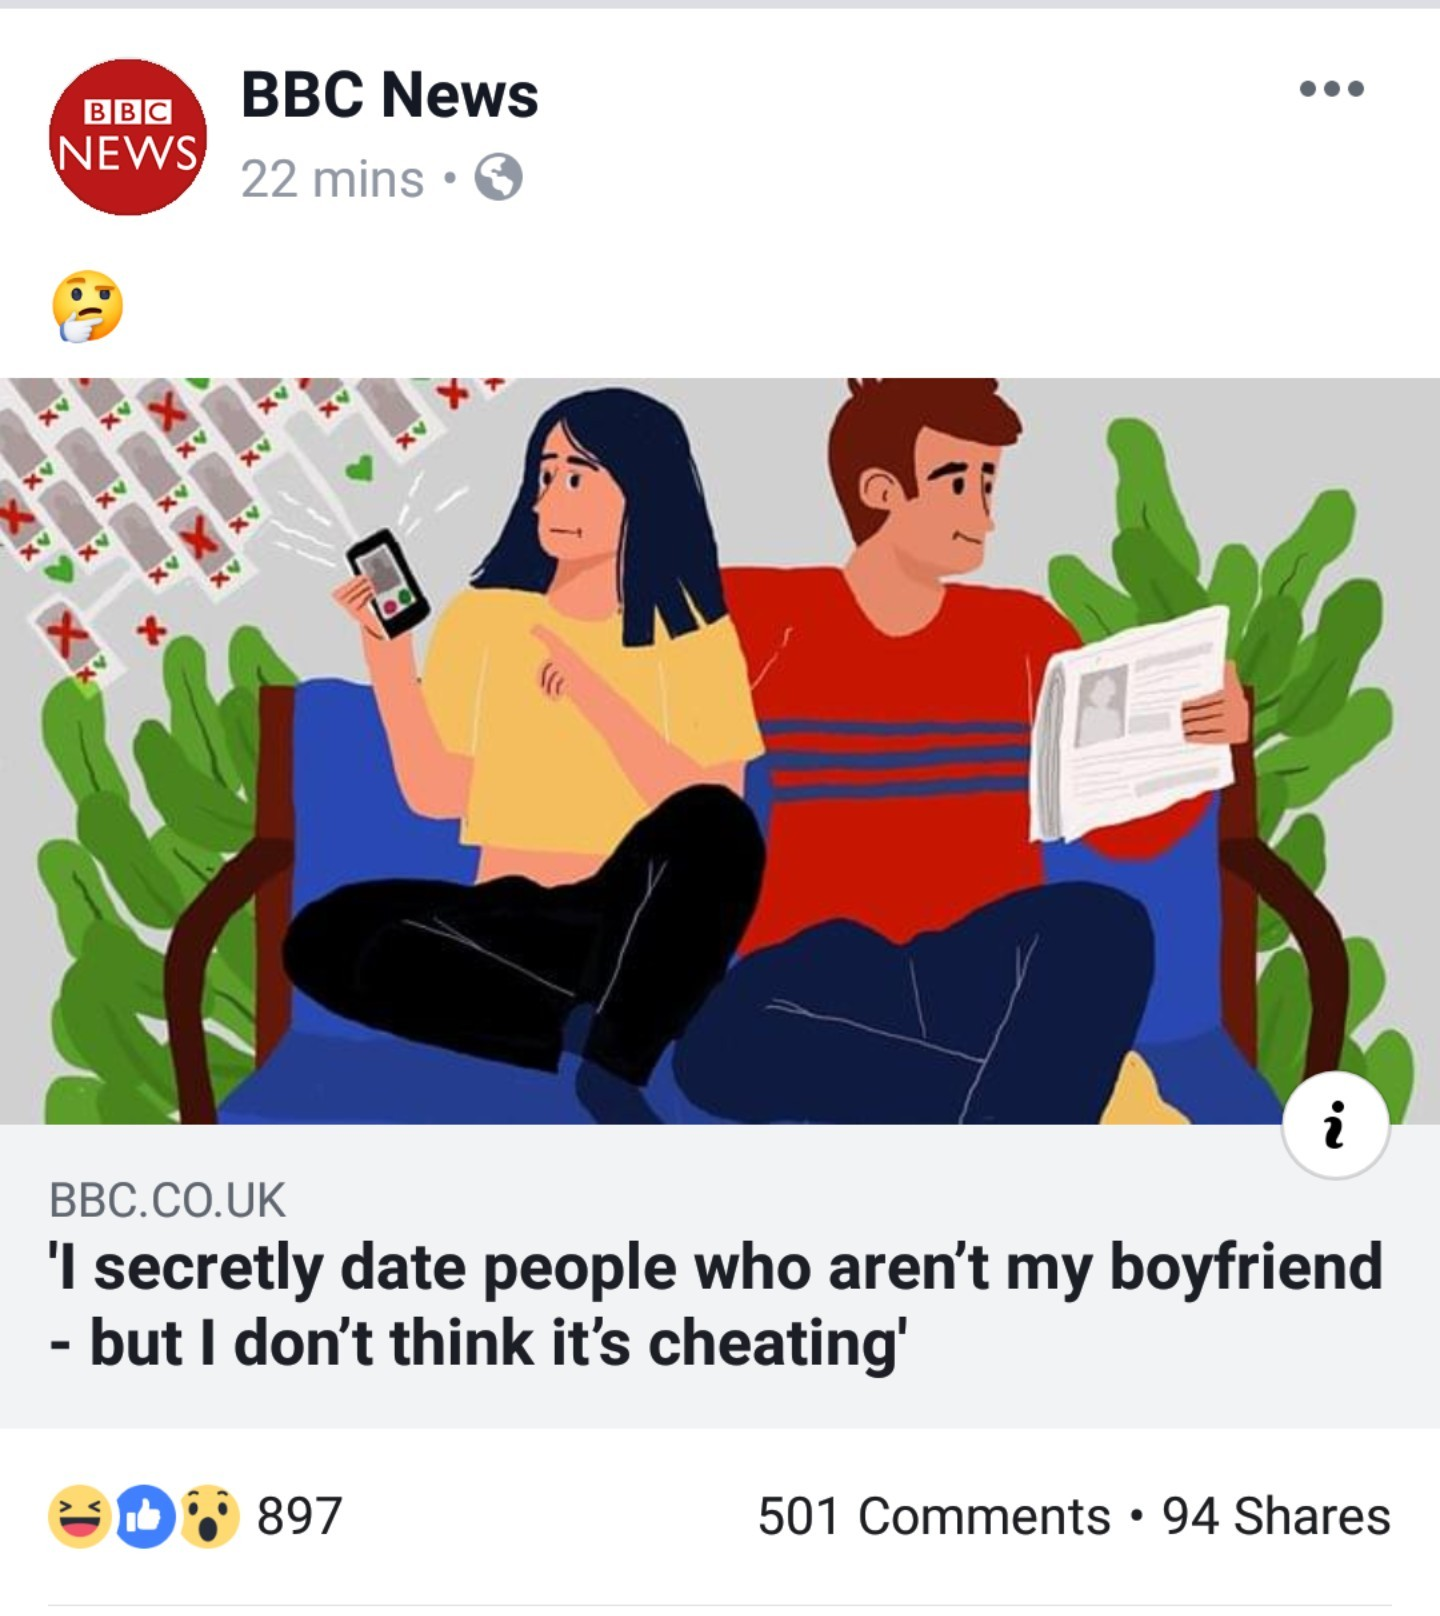 Is there any BBC channel that does news? - meme